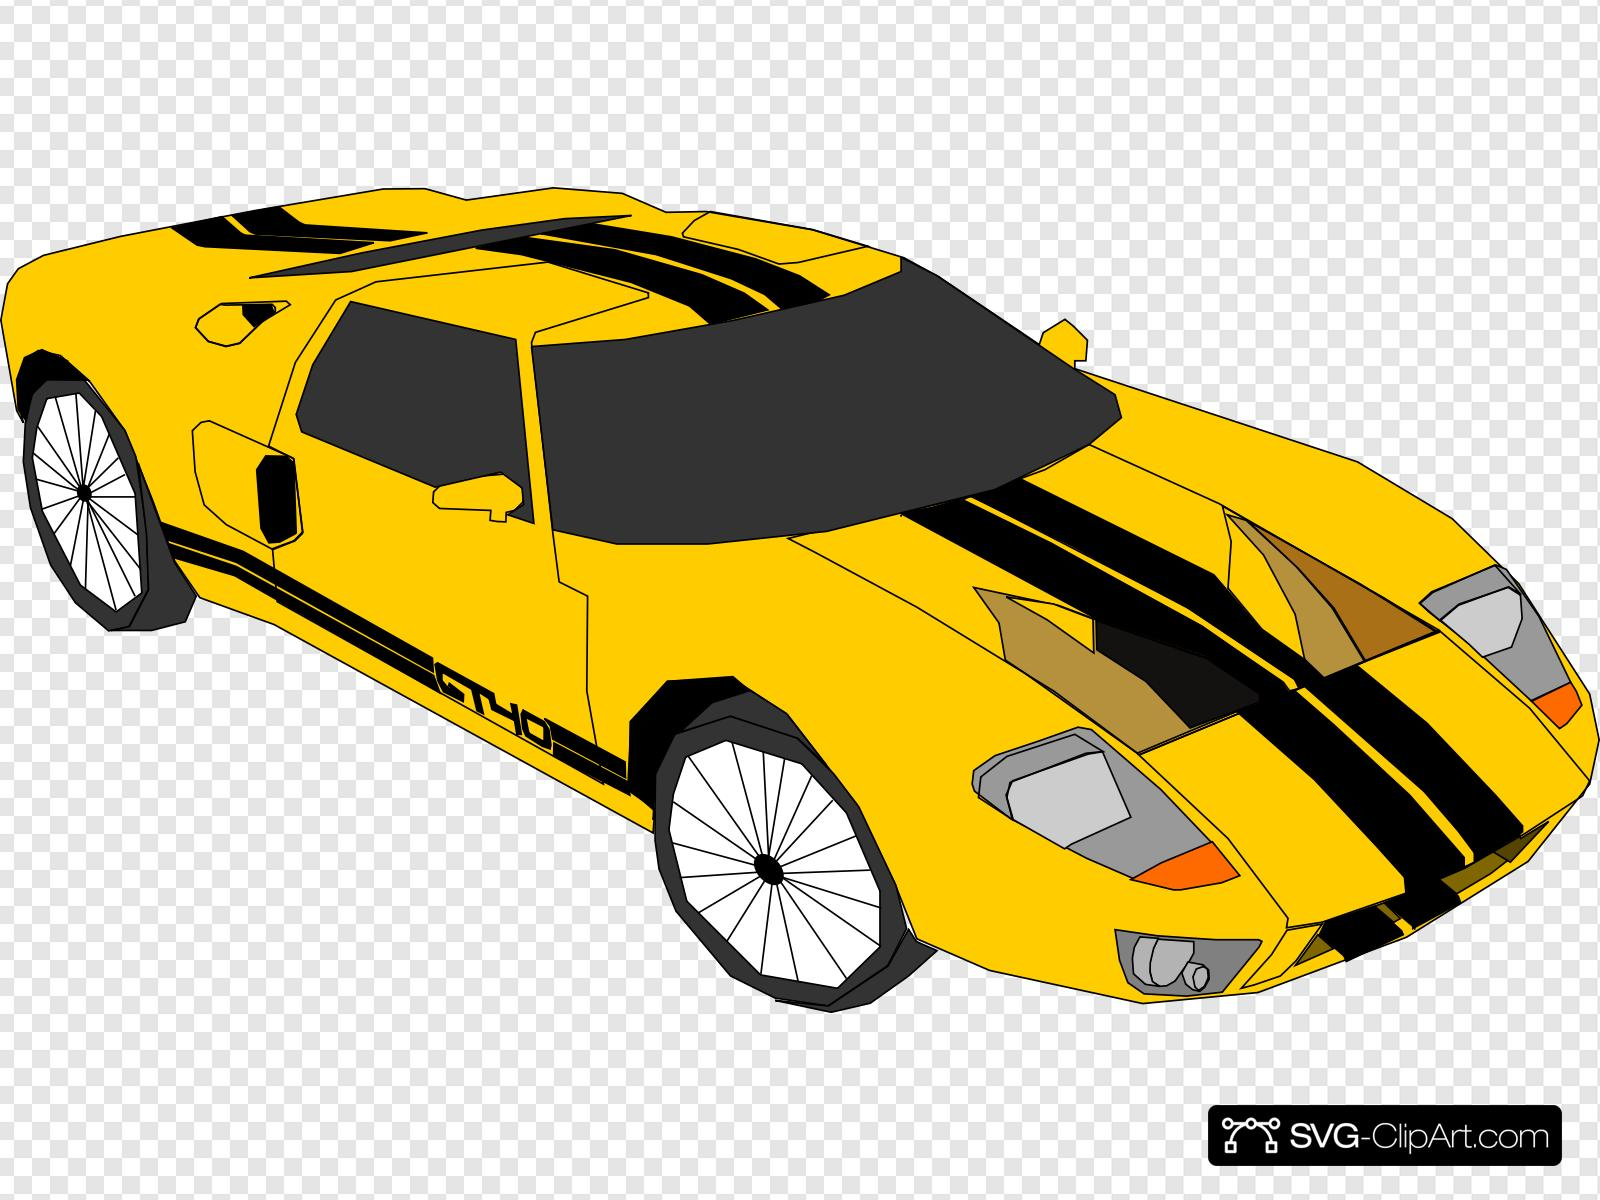 svg auto #735, Download drawings